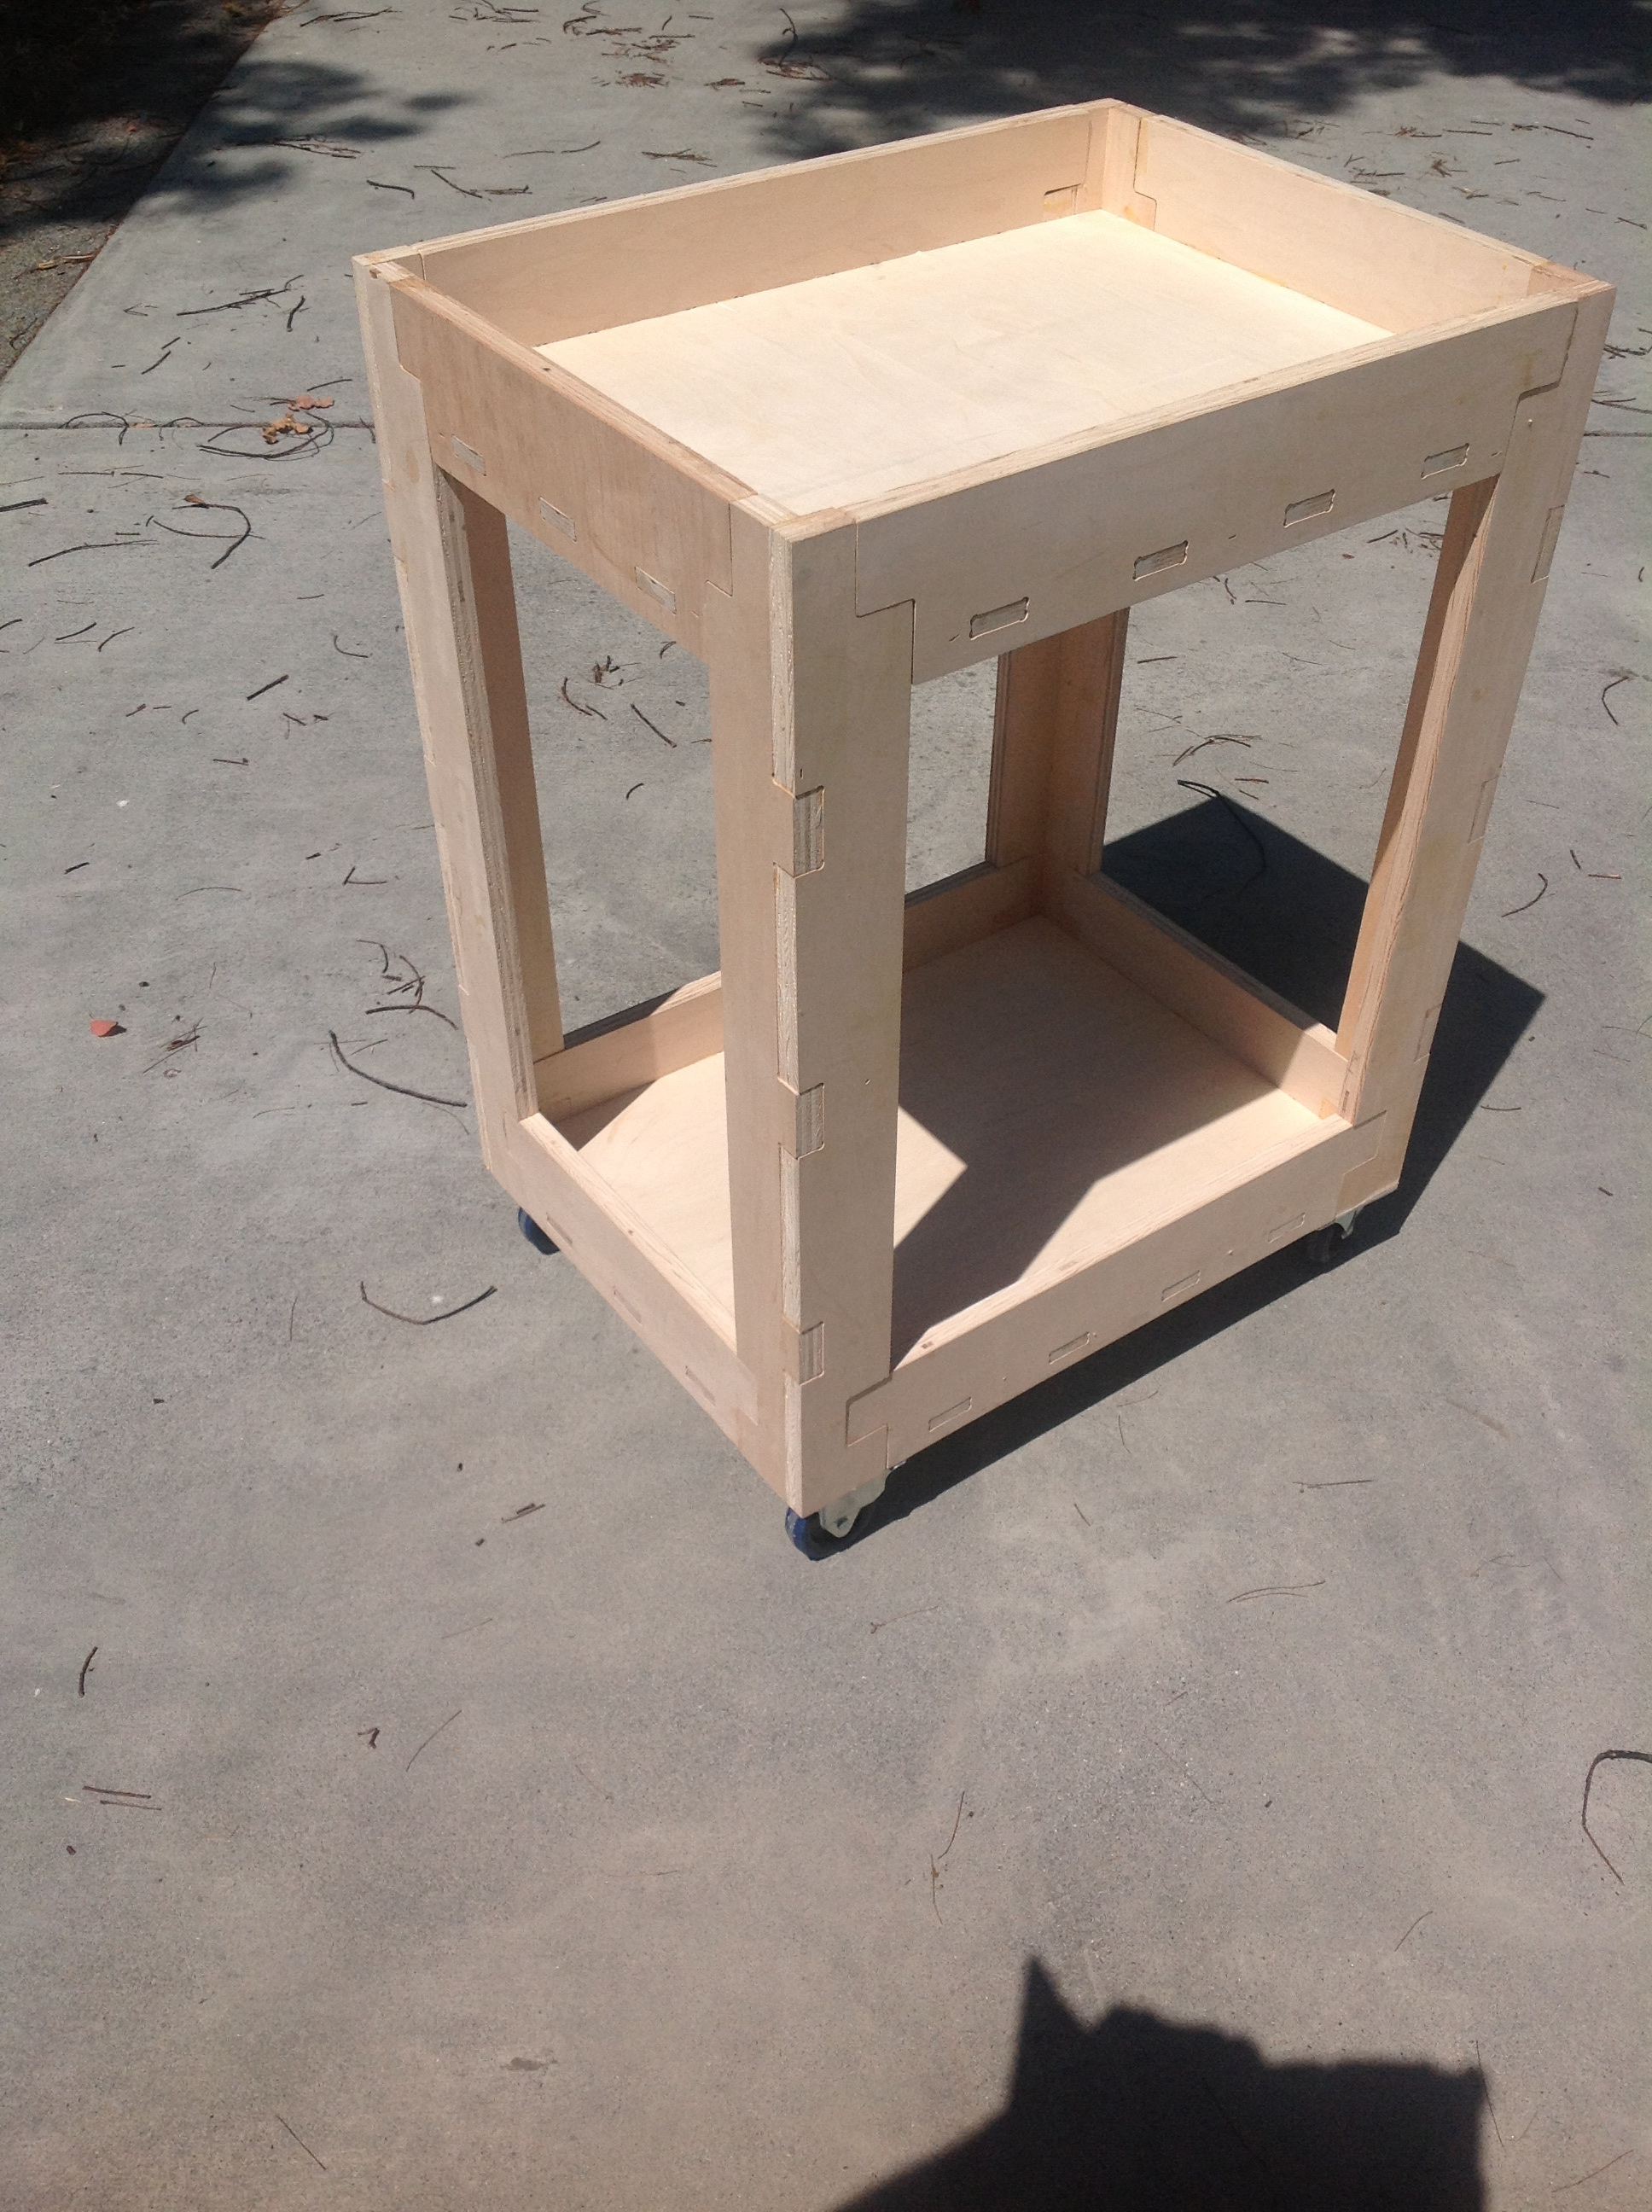 Picture of Plywood Shop Cart Made With CNC Router